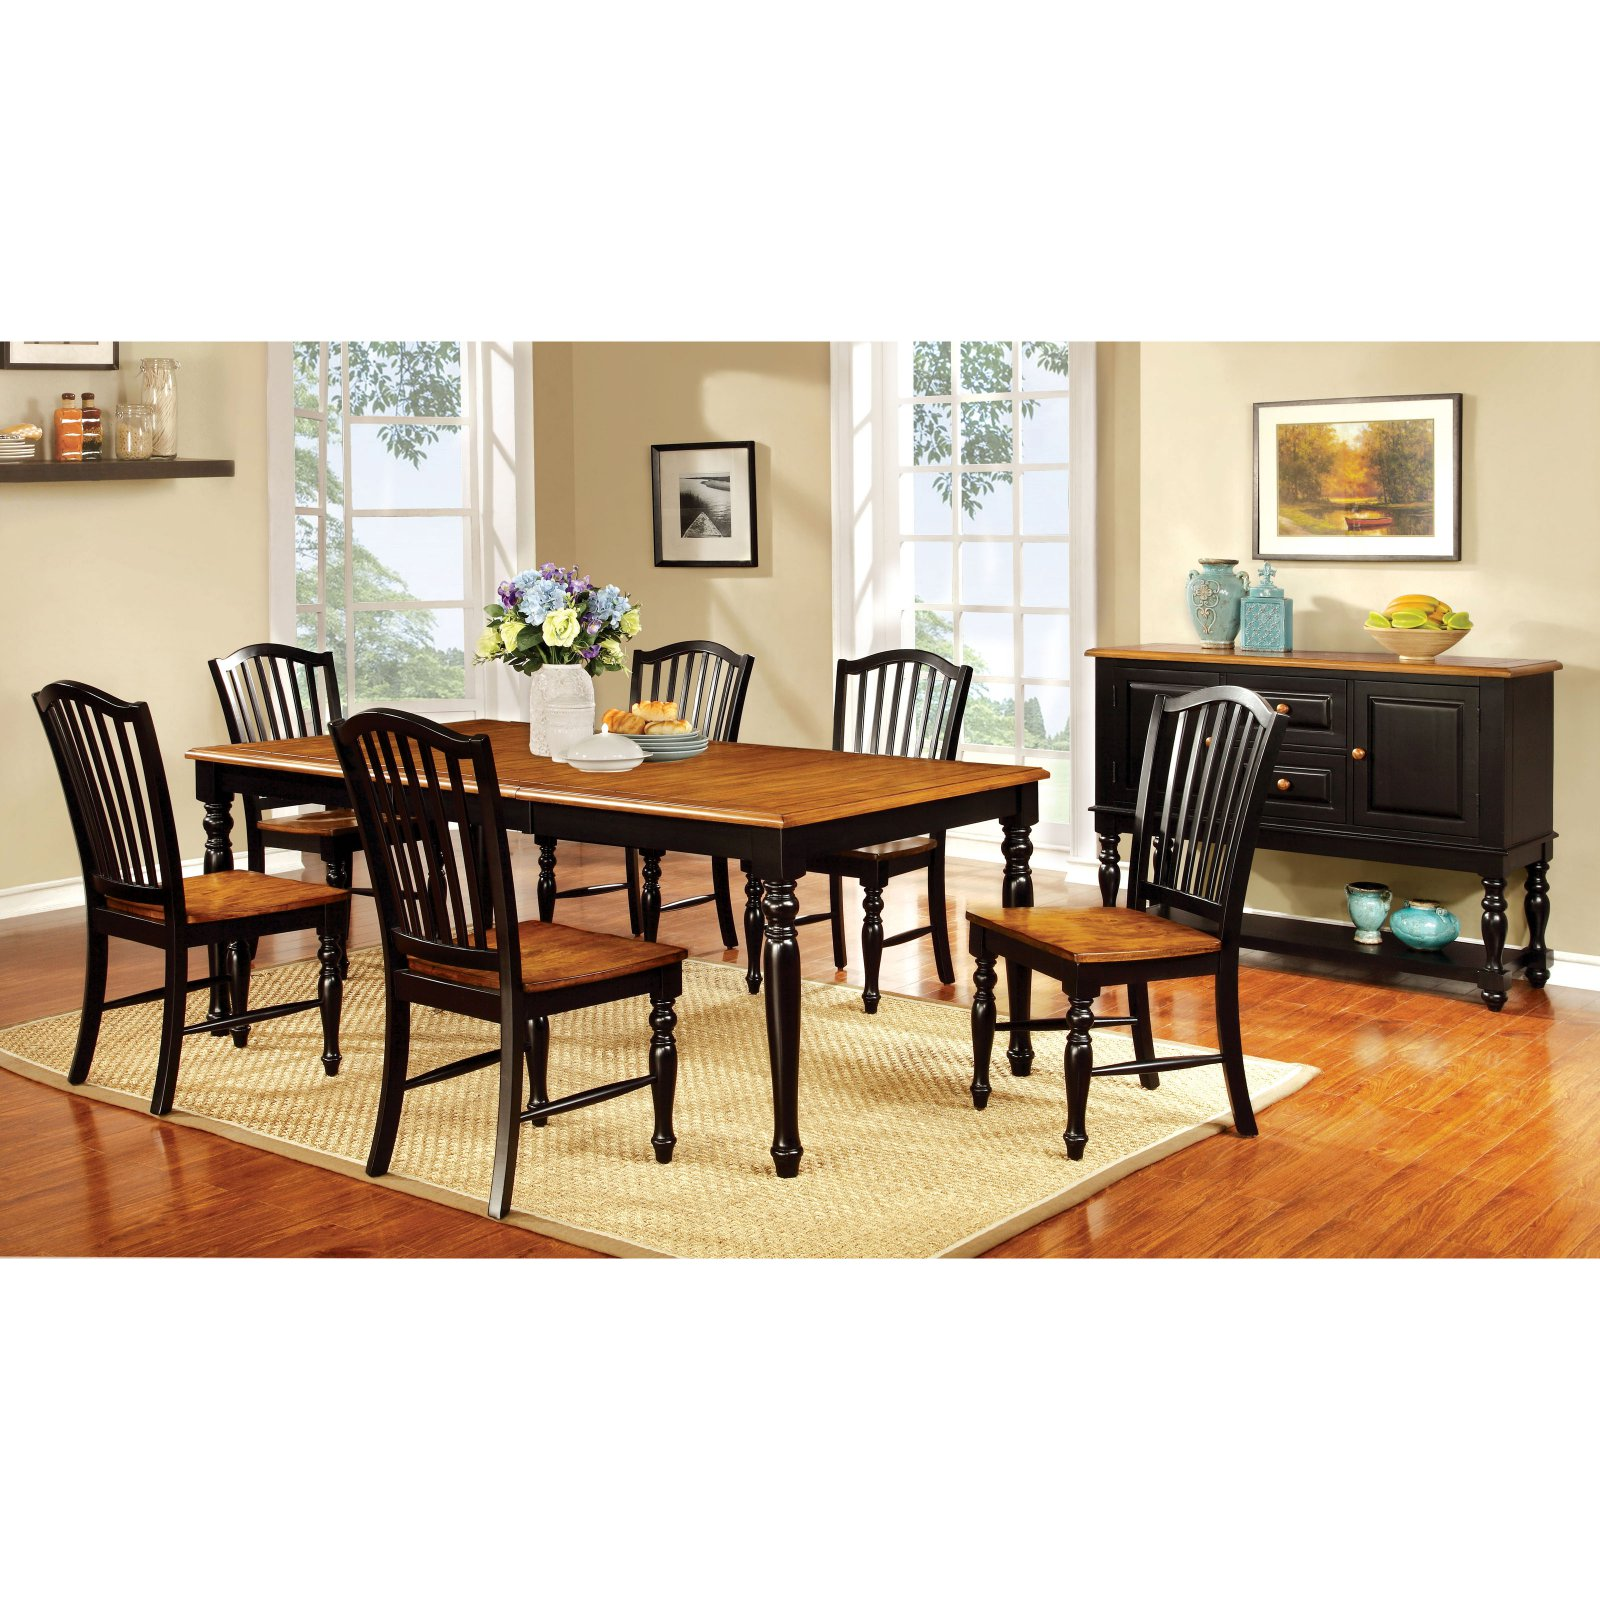 Furniture of America Drewes Dining Table